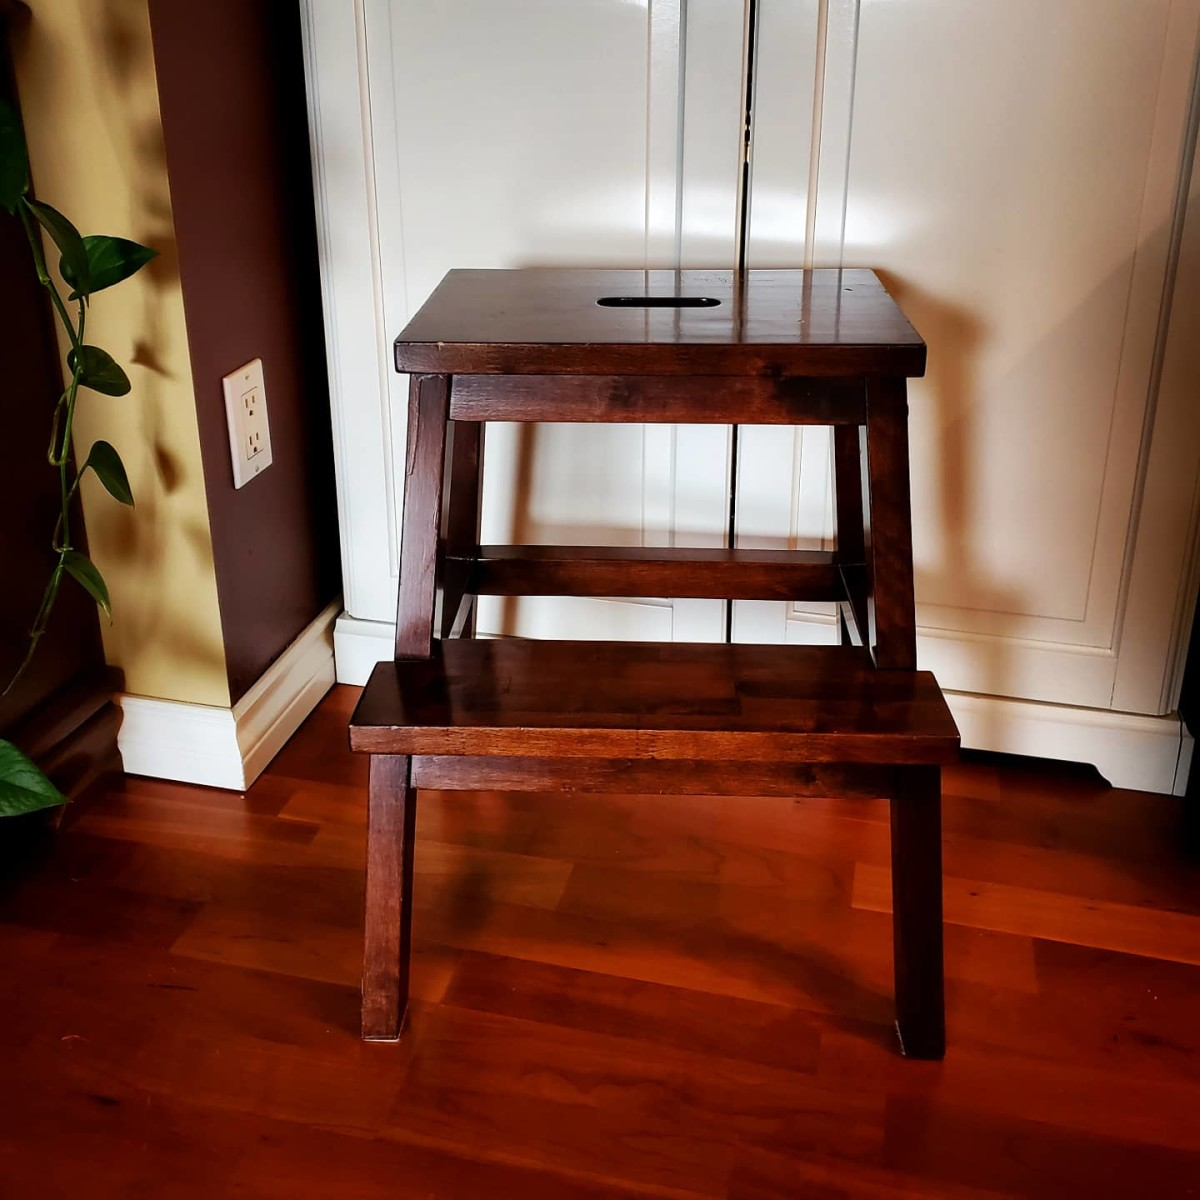 The Portable Stool. This step-stool is not only to reach for things up high, it can be used as a seat and an occasional table.